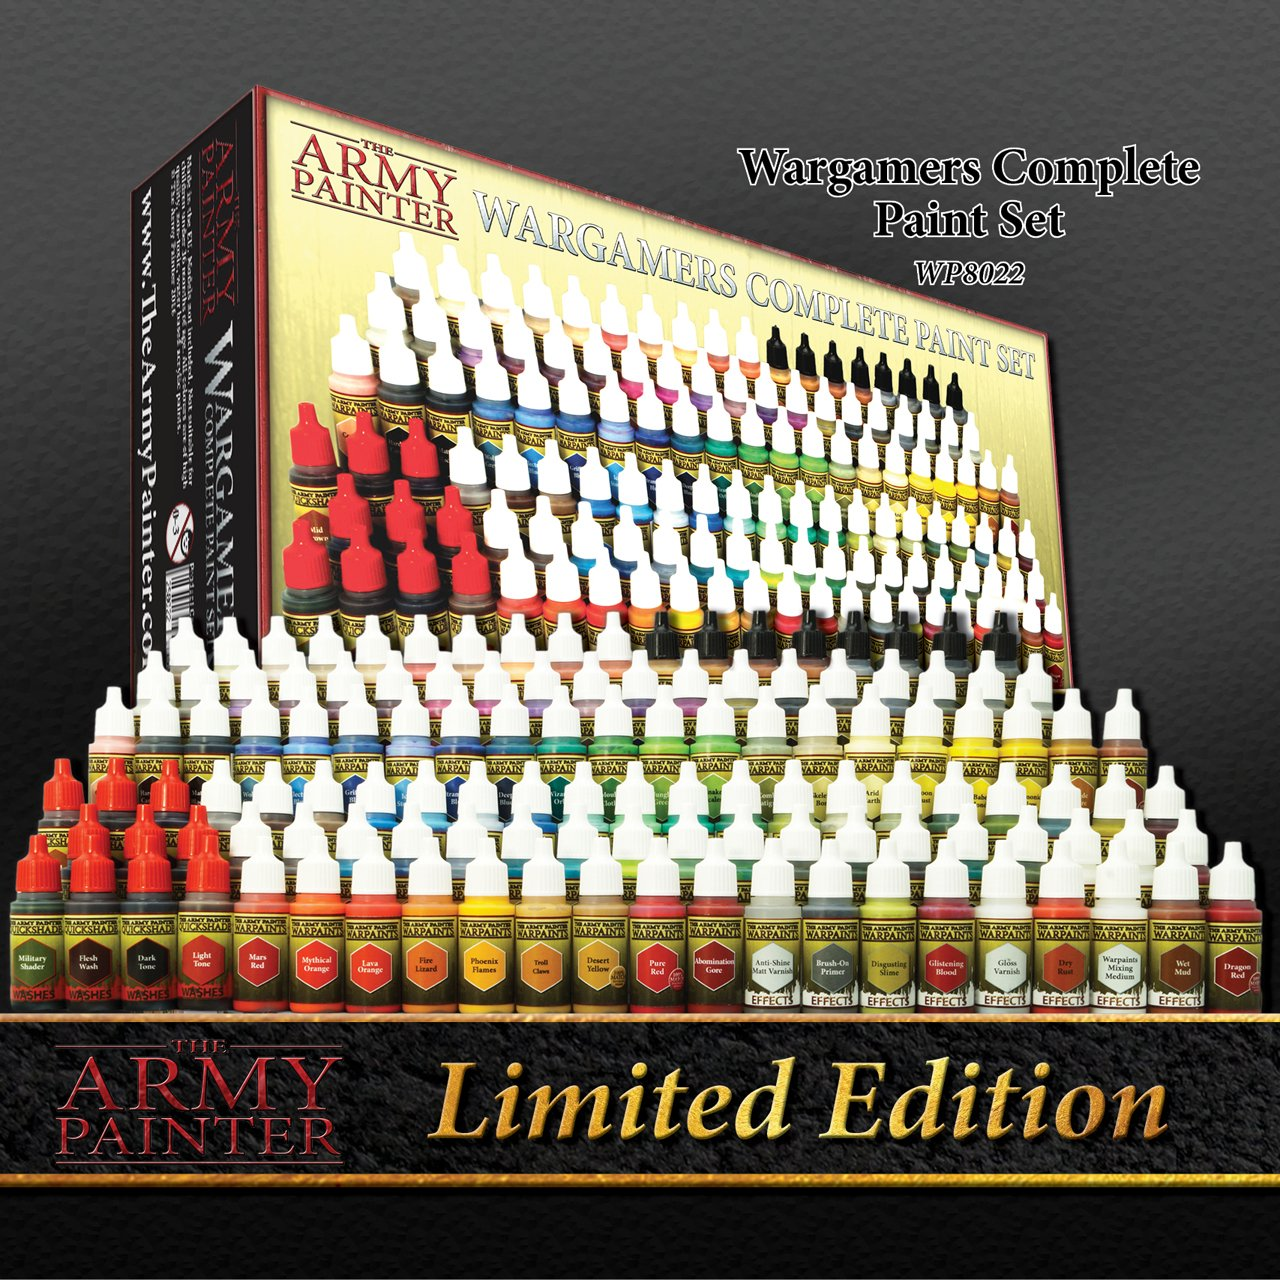 Warpaints Complete Wargamers Paint Set (Ltd Ed)